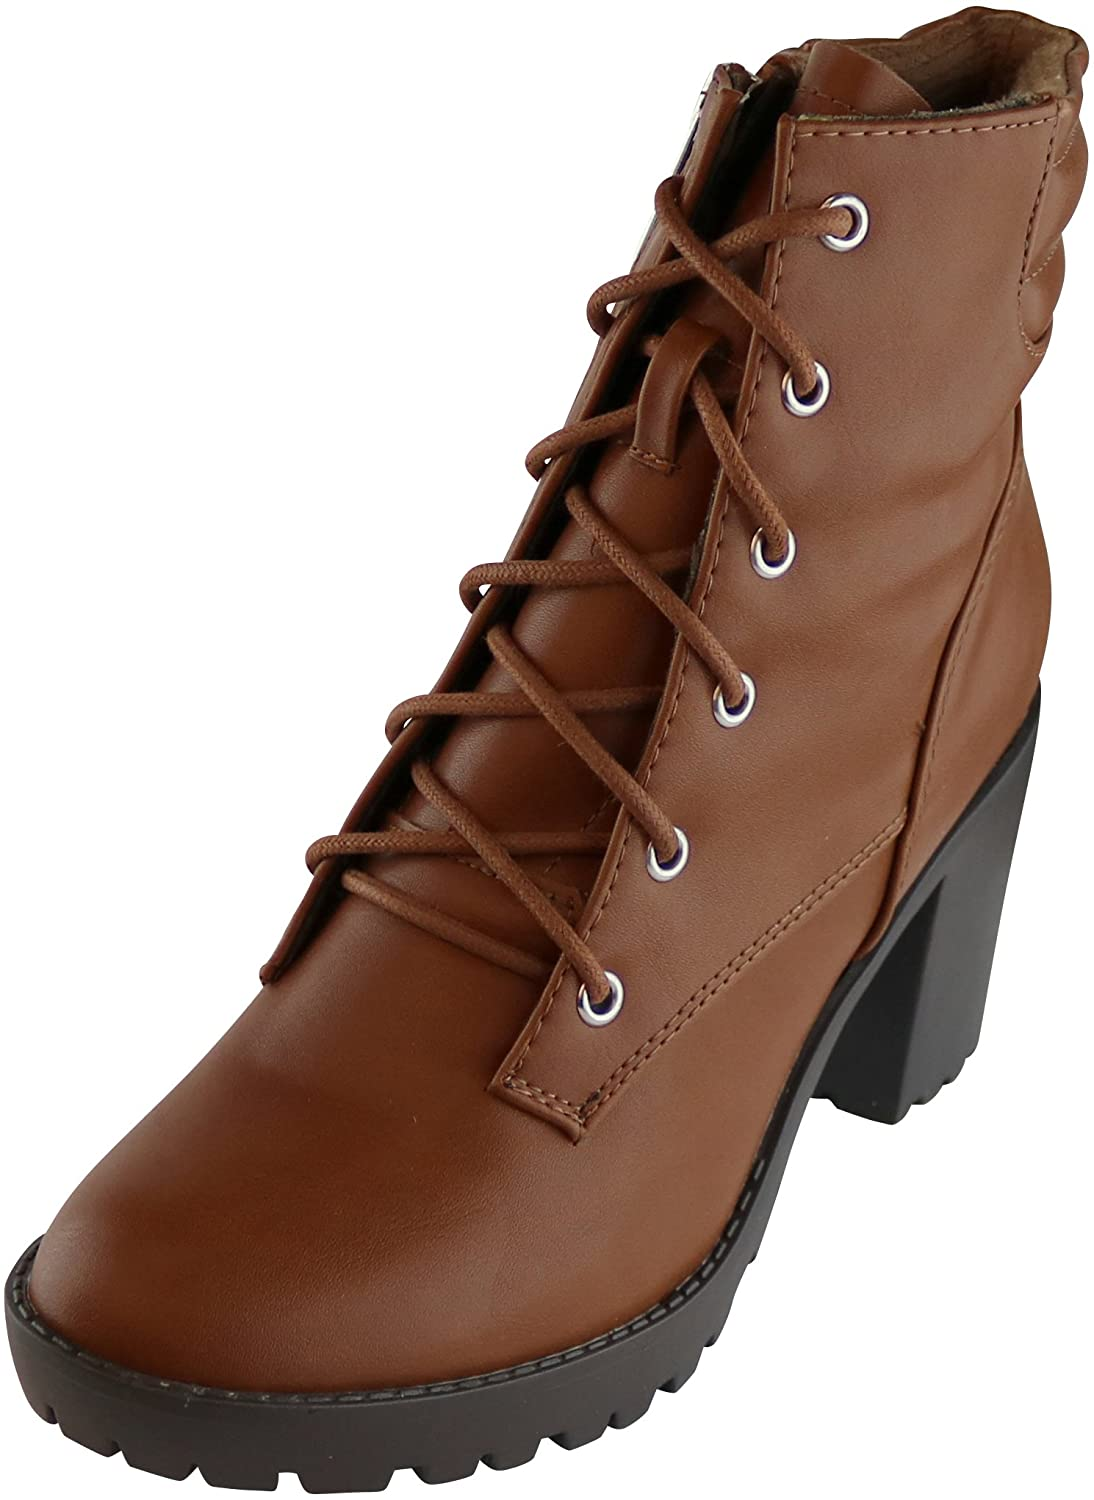 Cambridge Select Women's Closed Round Toe Lace-up Padded Collar Lug Sole Chunky Block Heel Ankle Bootie